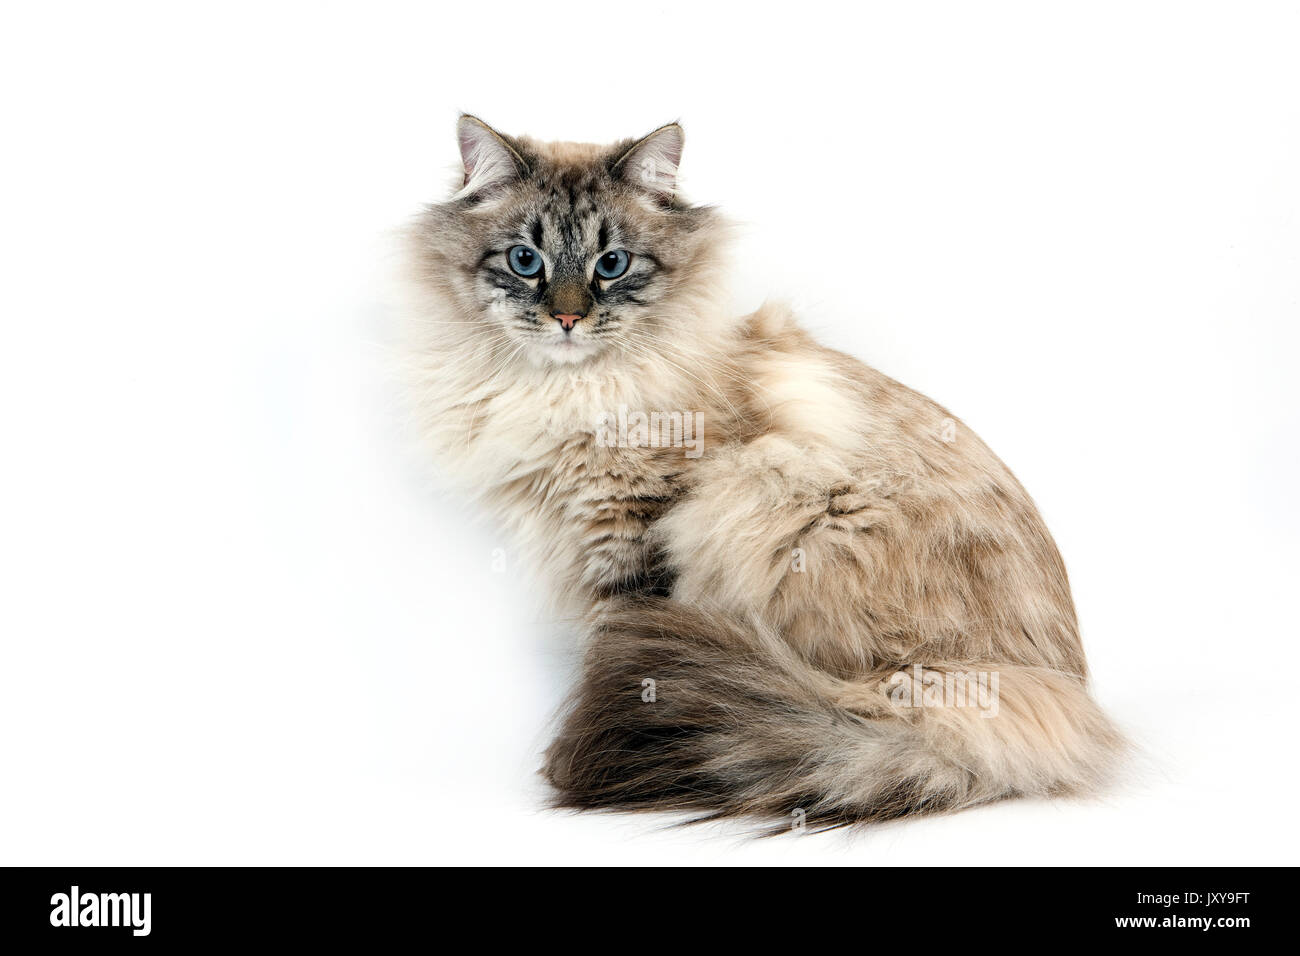 NEVA MASQUERADE SIBERIAN CAT, COLOR SEAL TABBY POINT, MALE AGAINST WHITE BACKGROUND - Stock Image